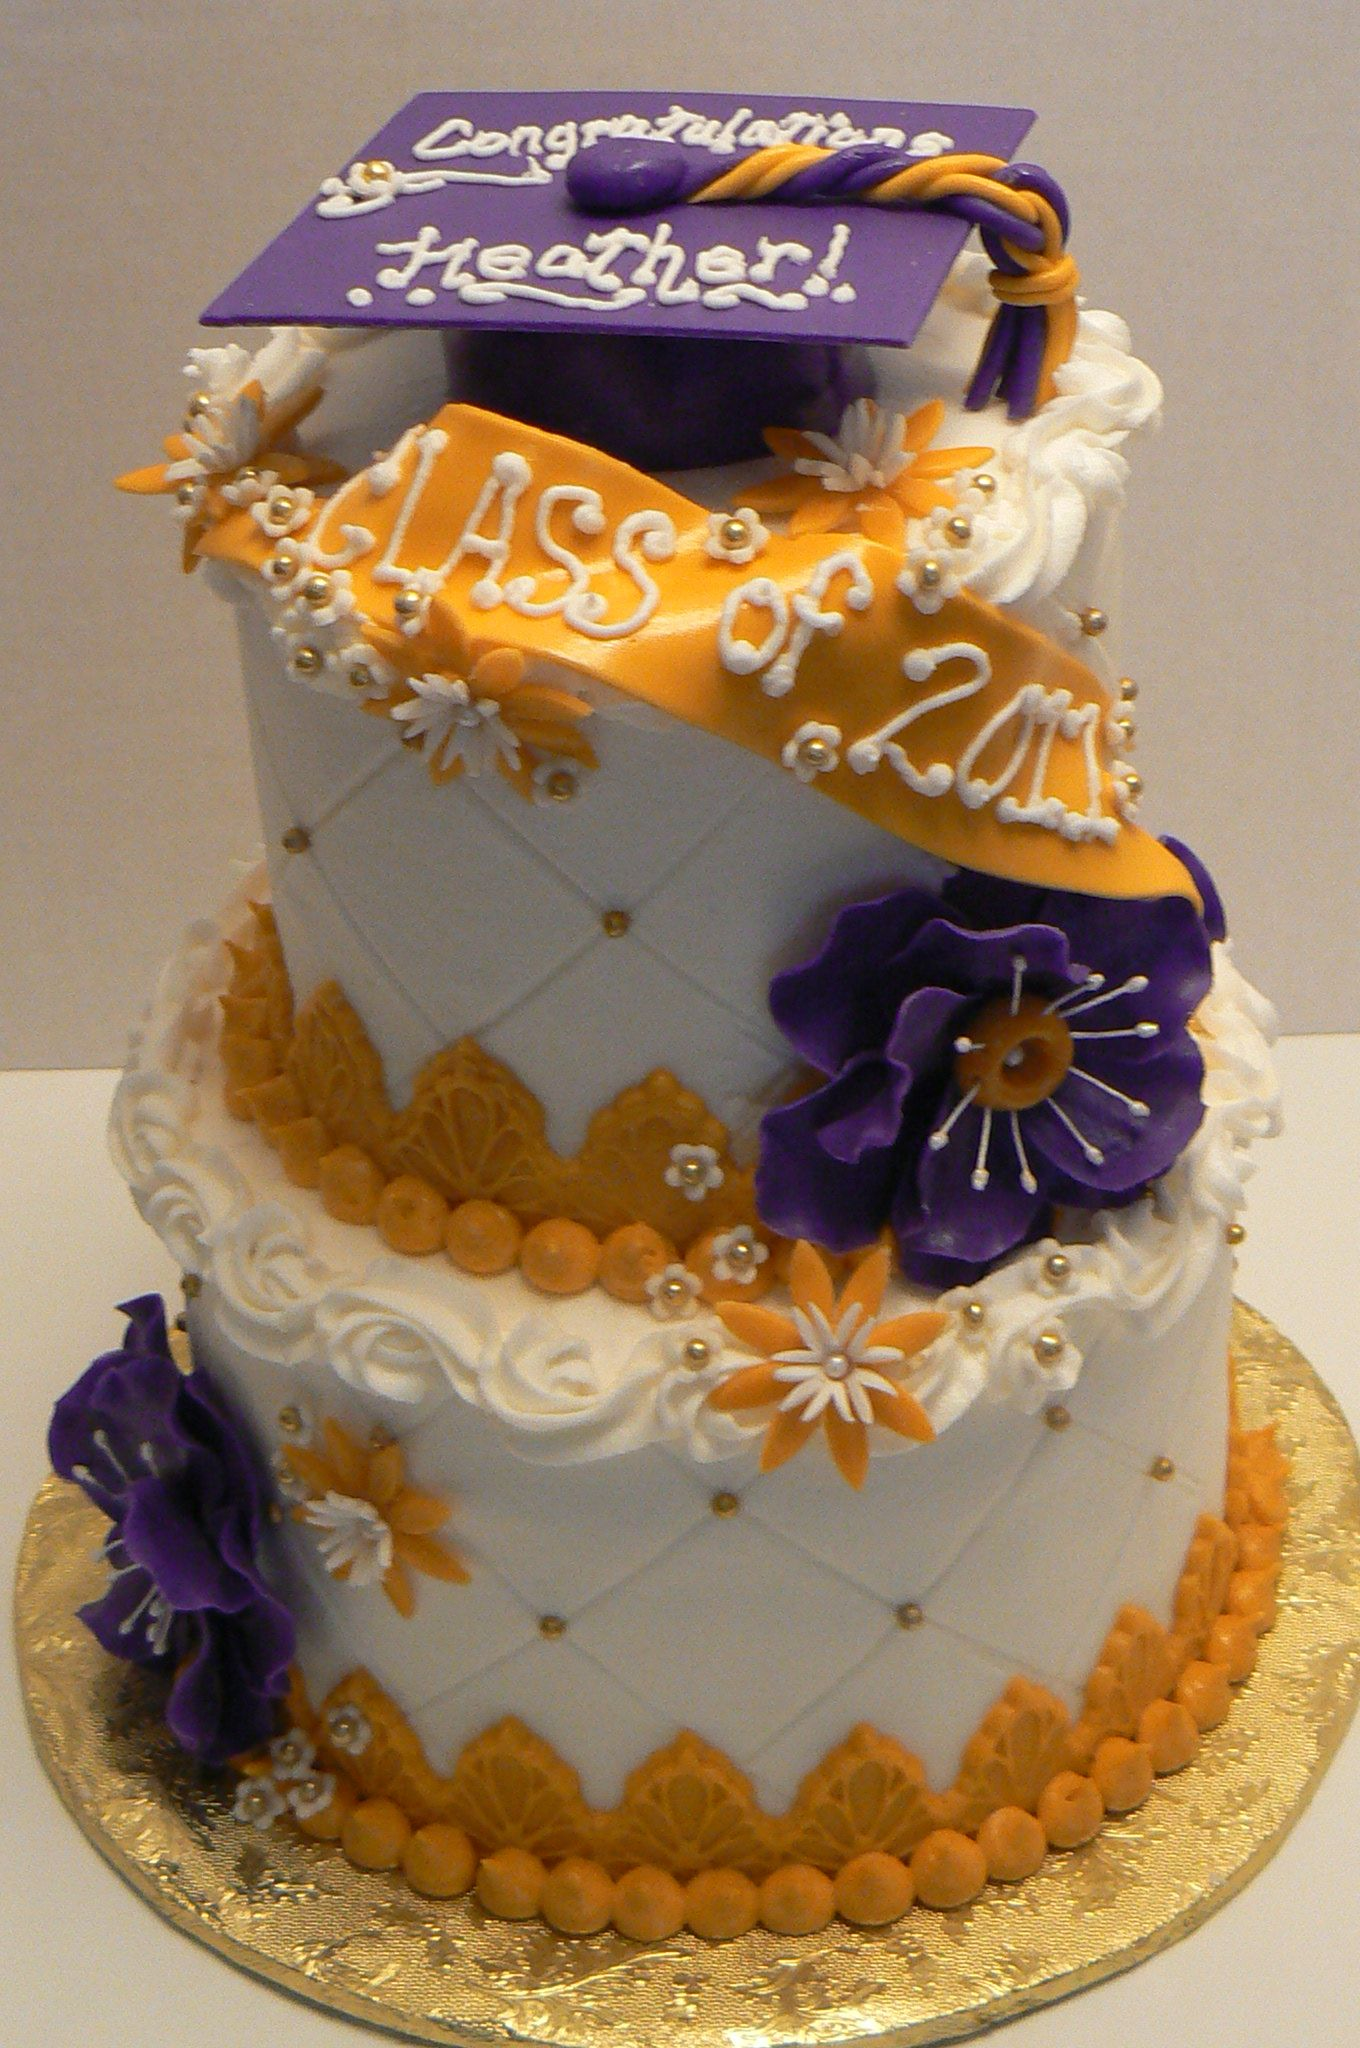 Heather's Graduation Cake - I made this cake for a young lady's graduation.  Her school colors are purple and gold and she wanted a white cake with vanilla filling and vanilla buttercream.  I'm having a ball making the anemones- this is the second cake I've made them for recently.